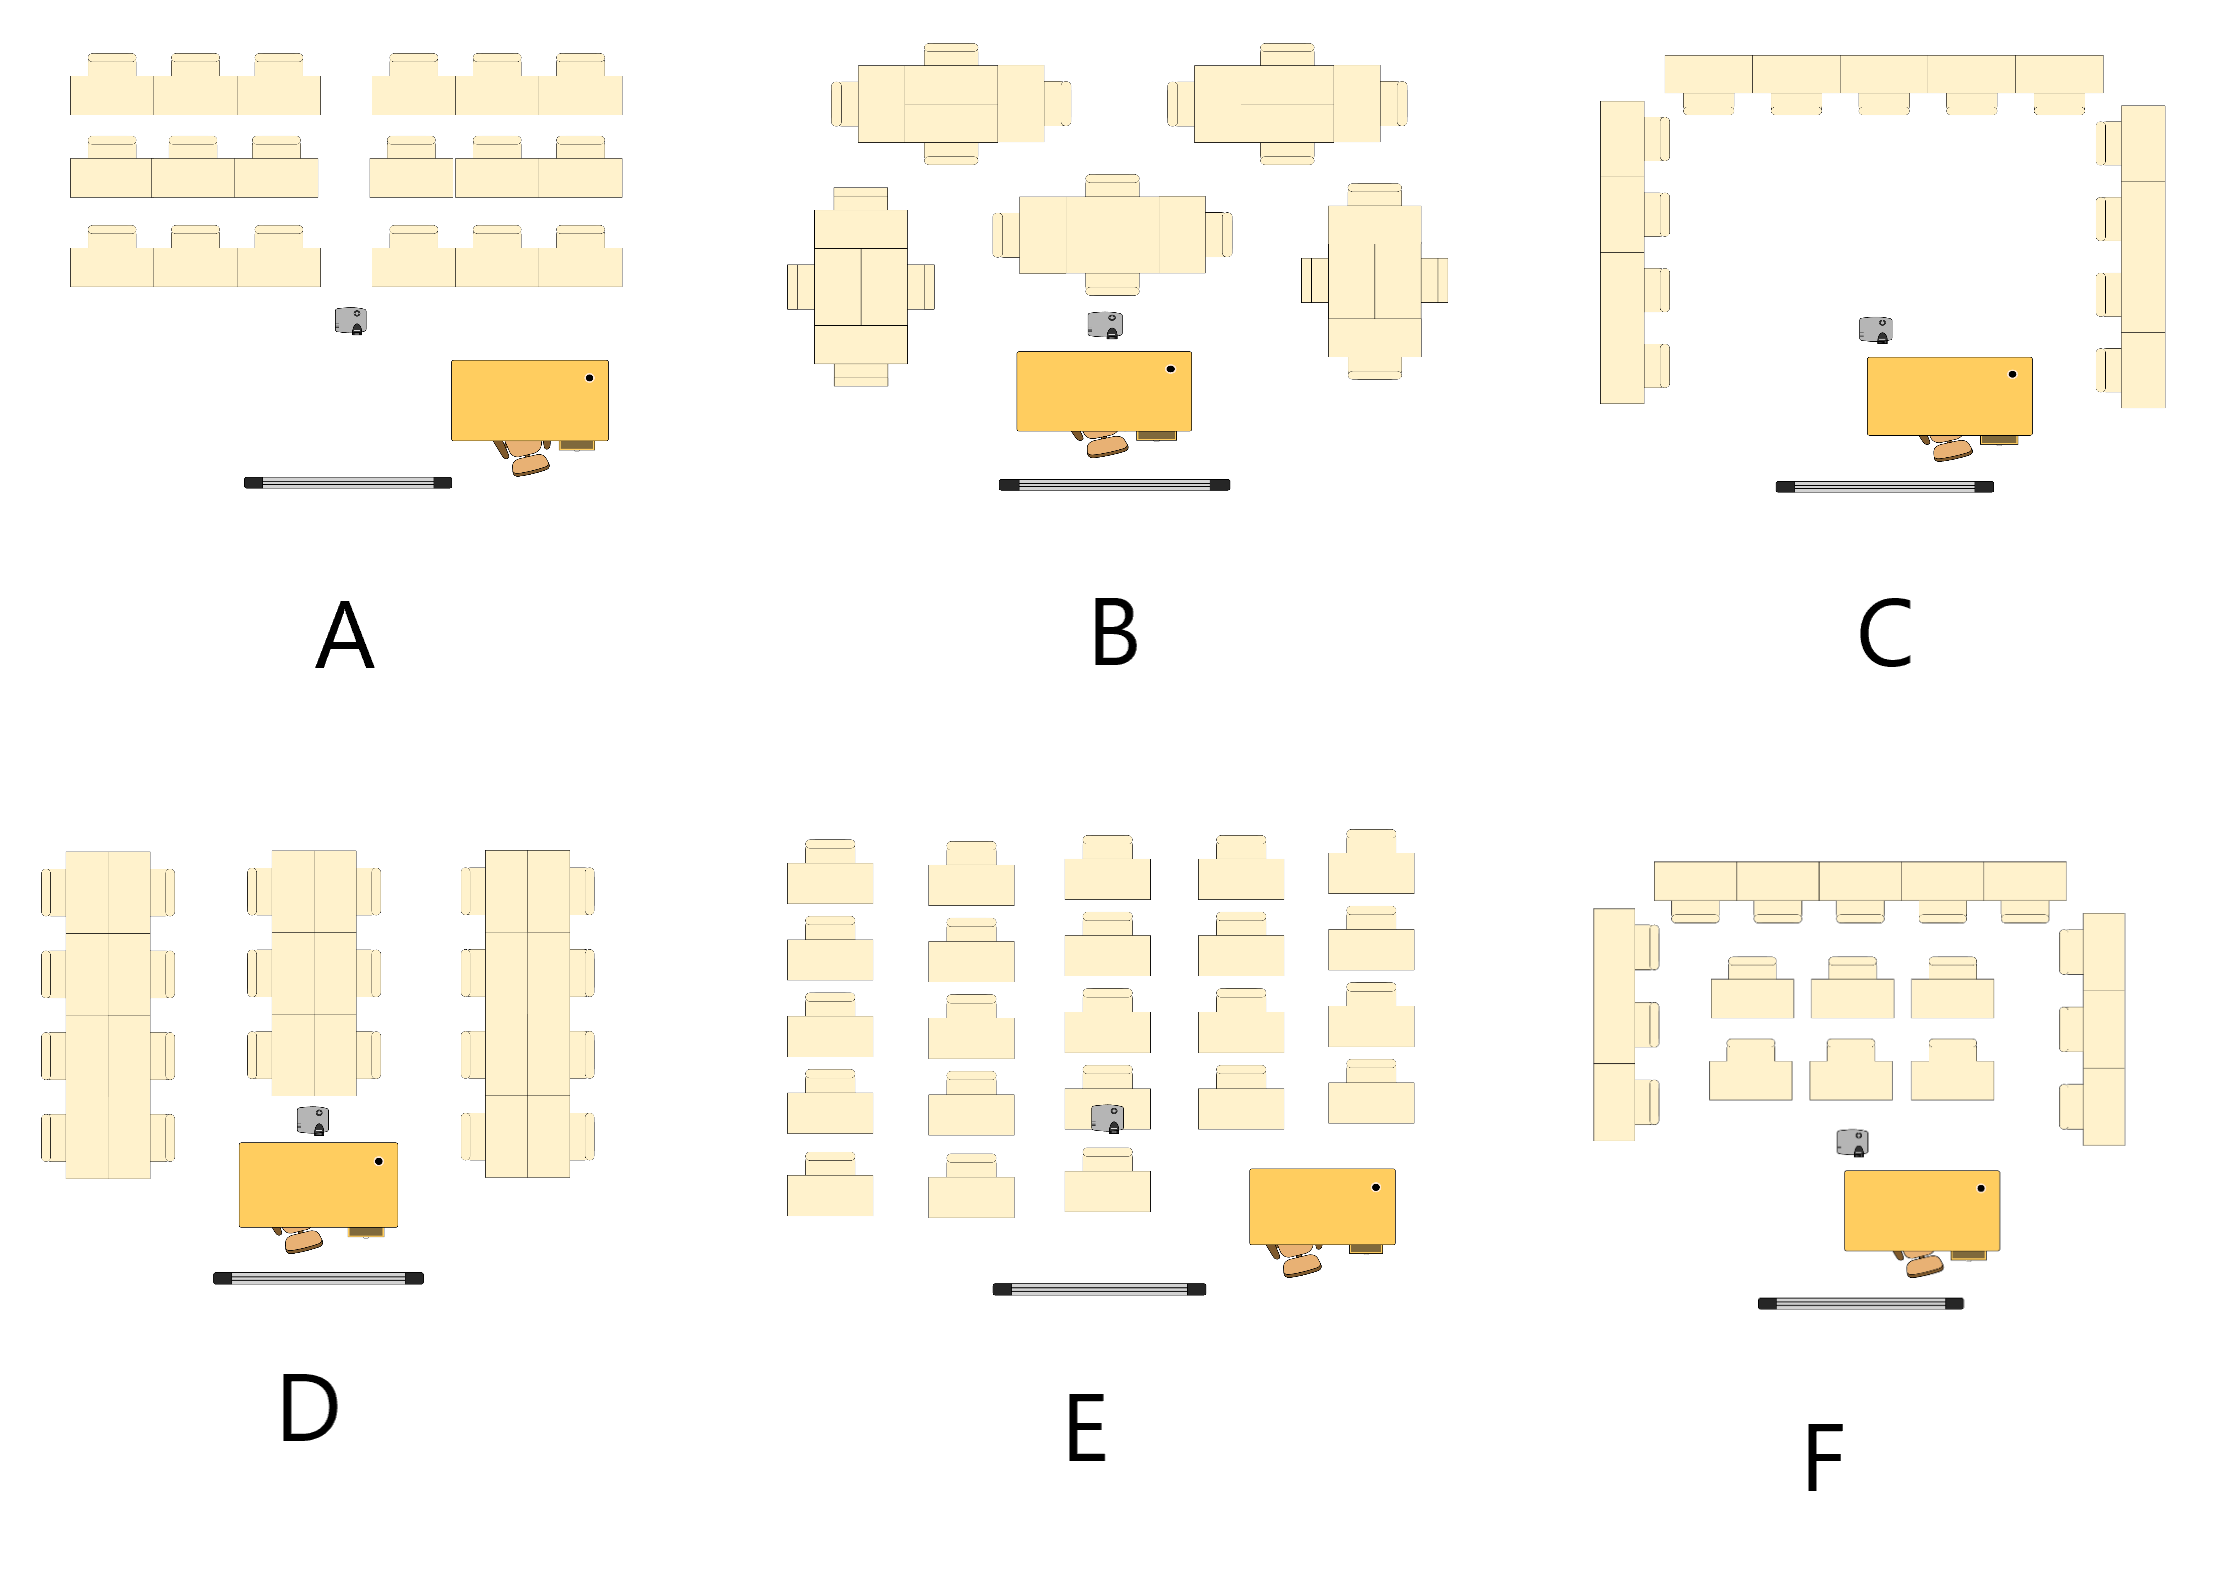 Classroom Layouts - If you are unable to view, choose <q>Other</q> below and describe